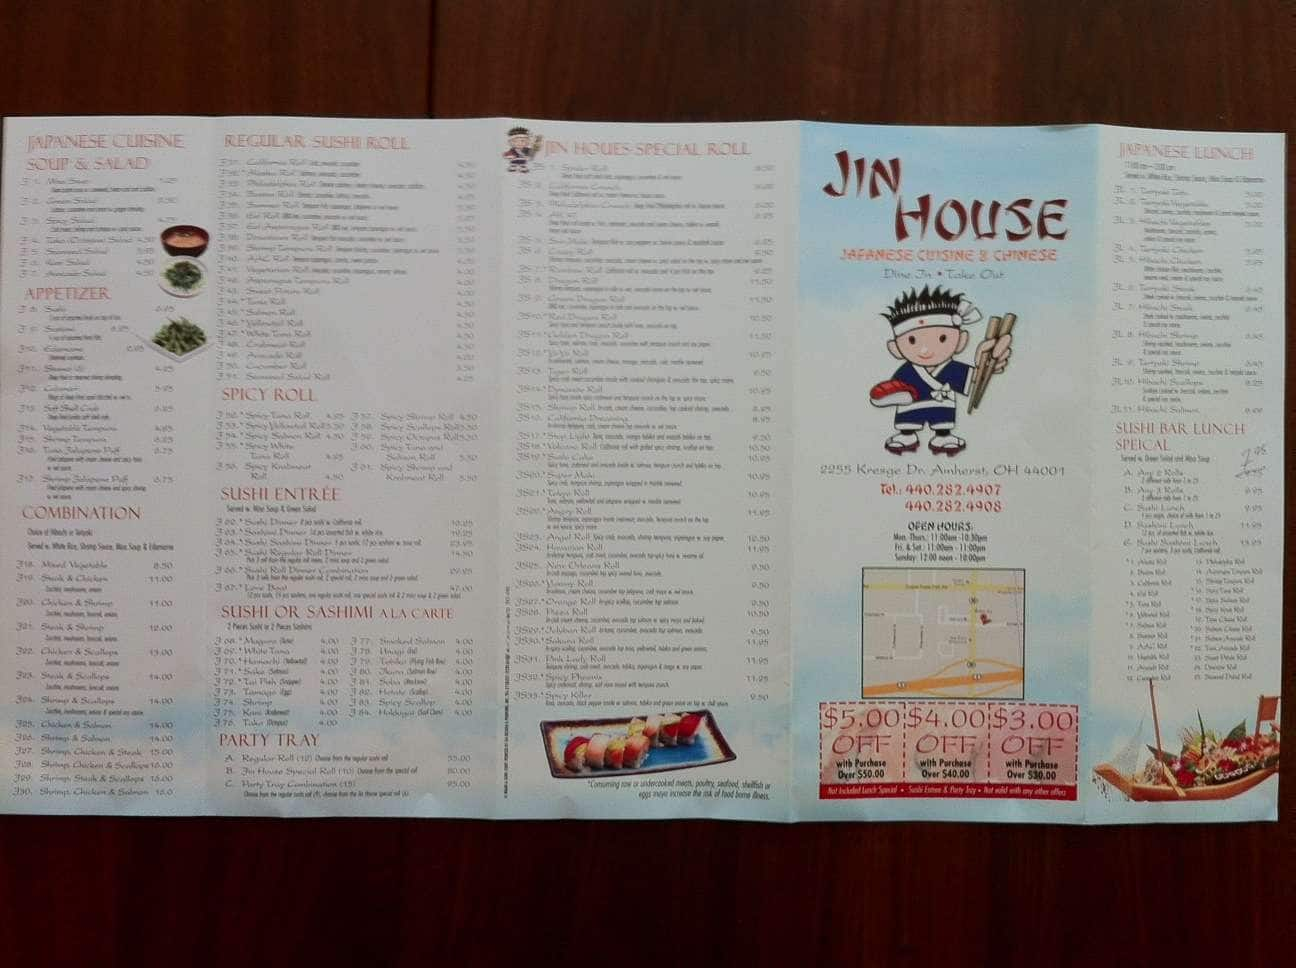 Jin House Menu Menu For Jin House Amherst Cleveland